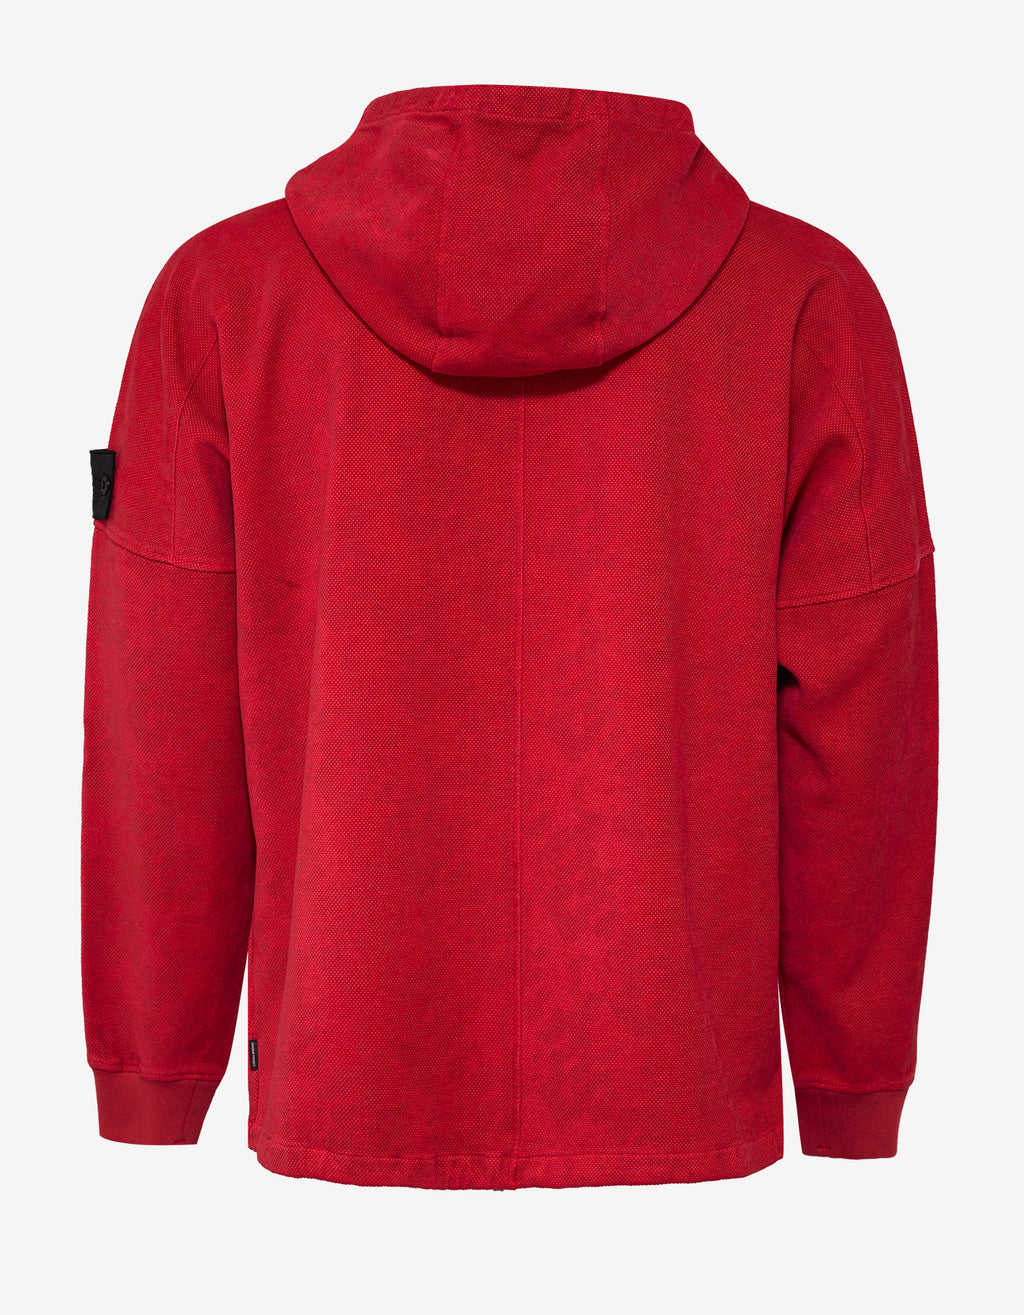 Red Flank Pocket Anorak